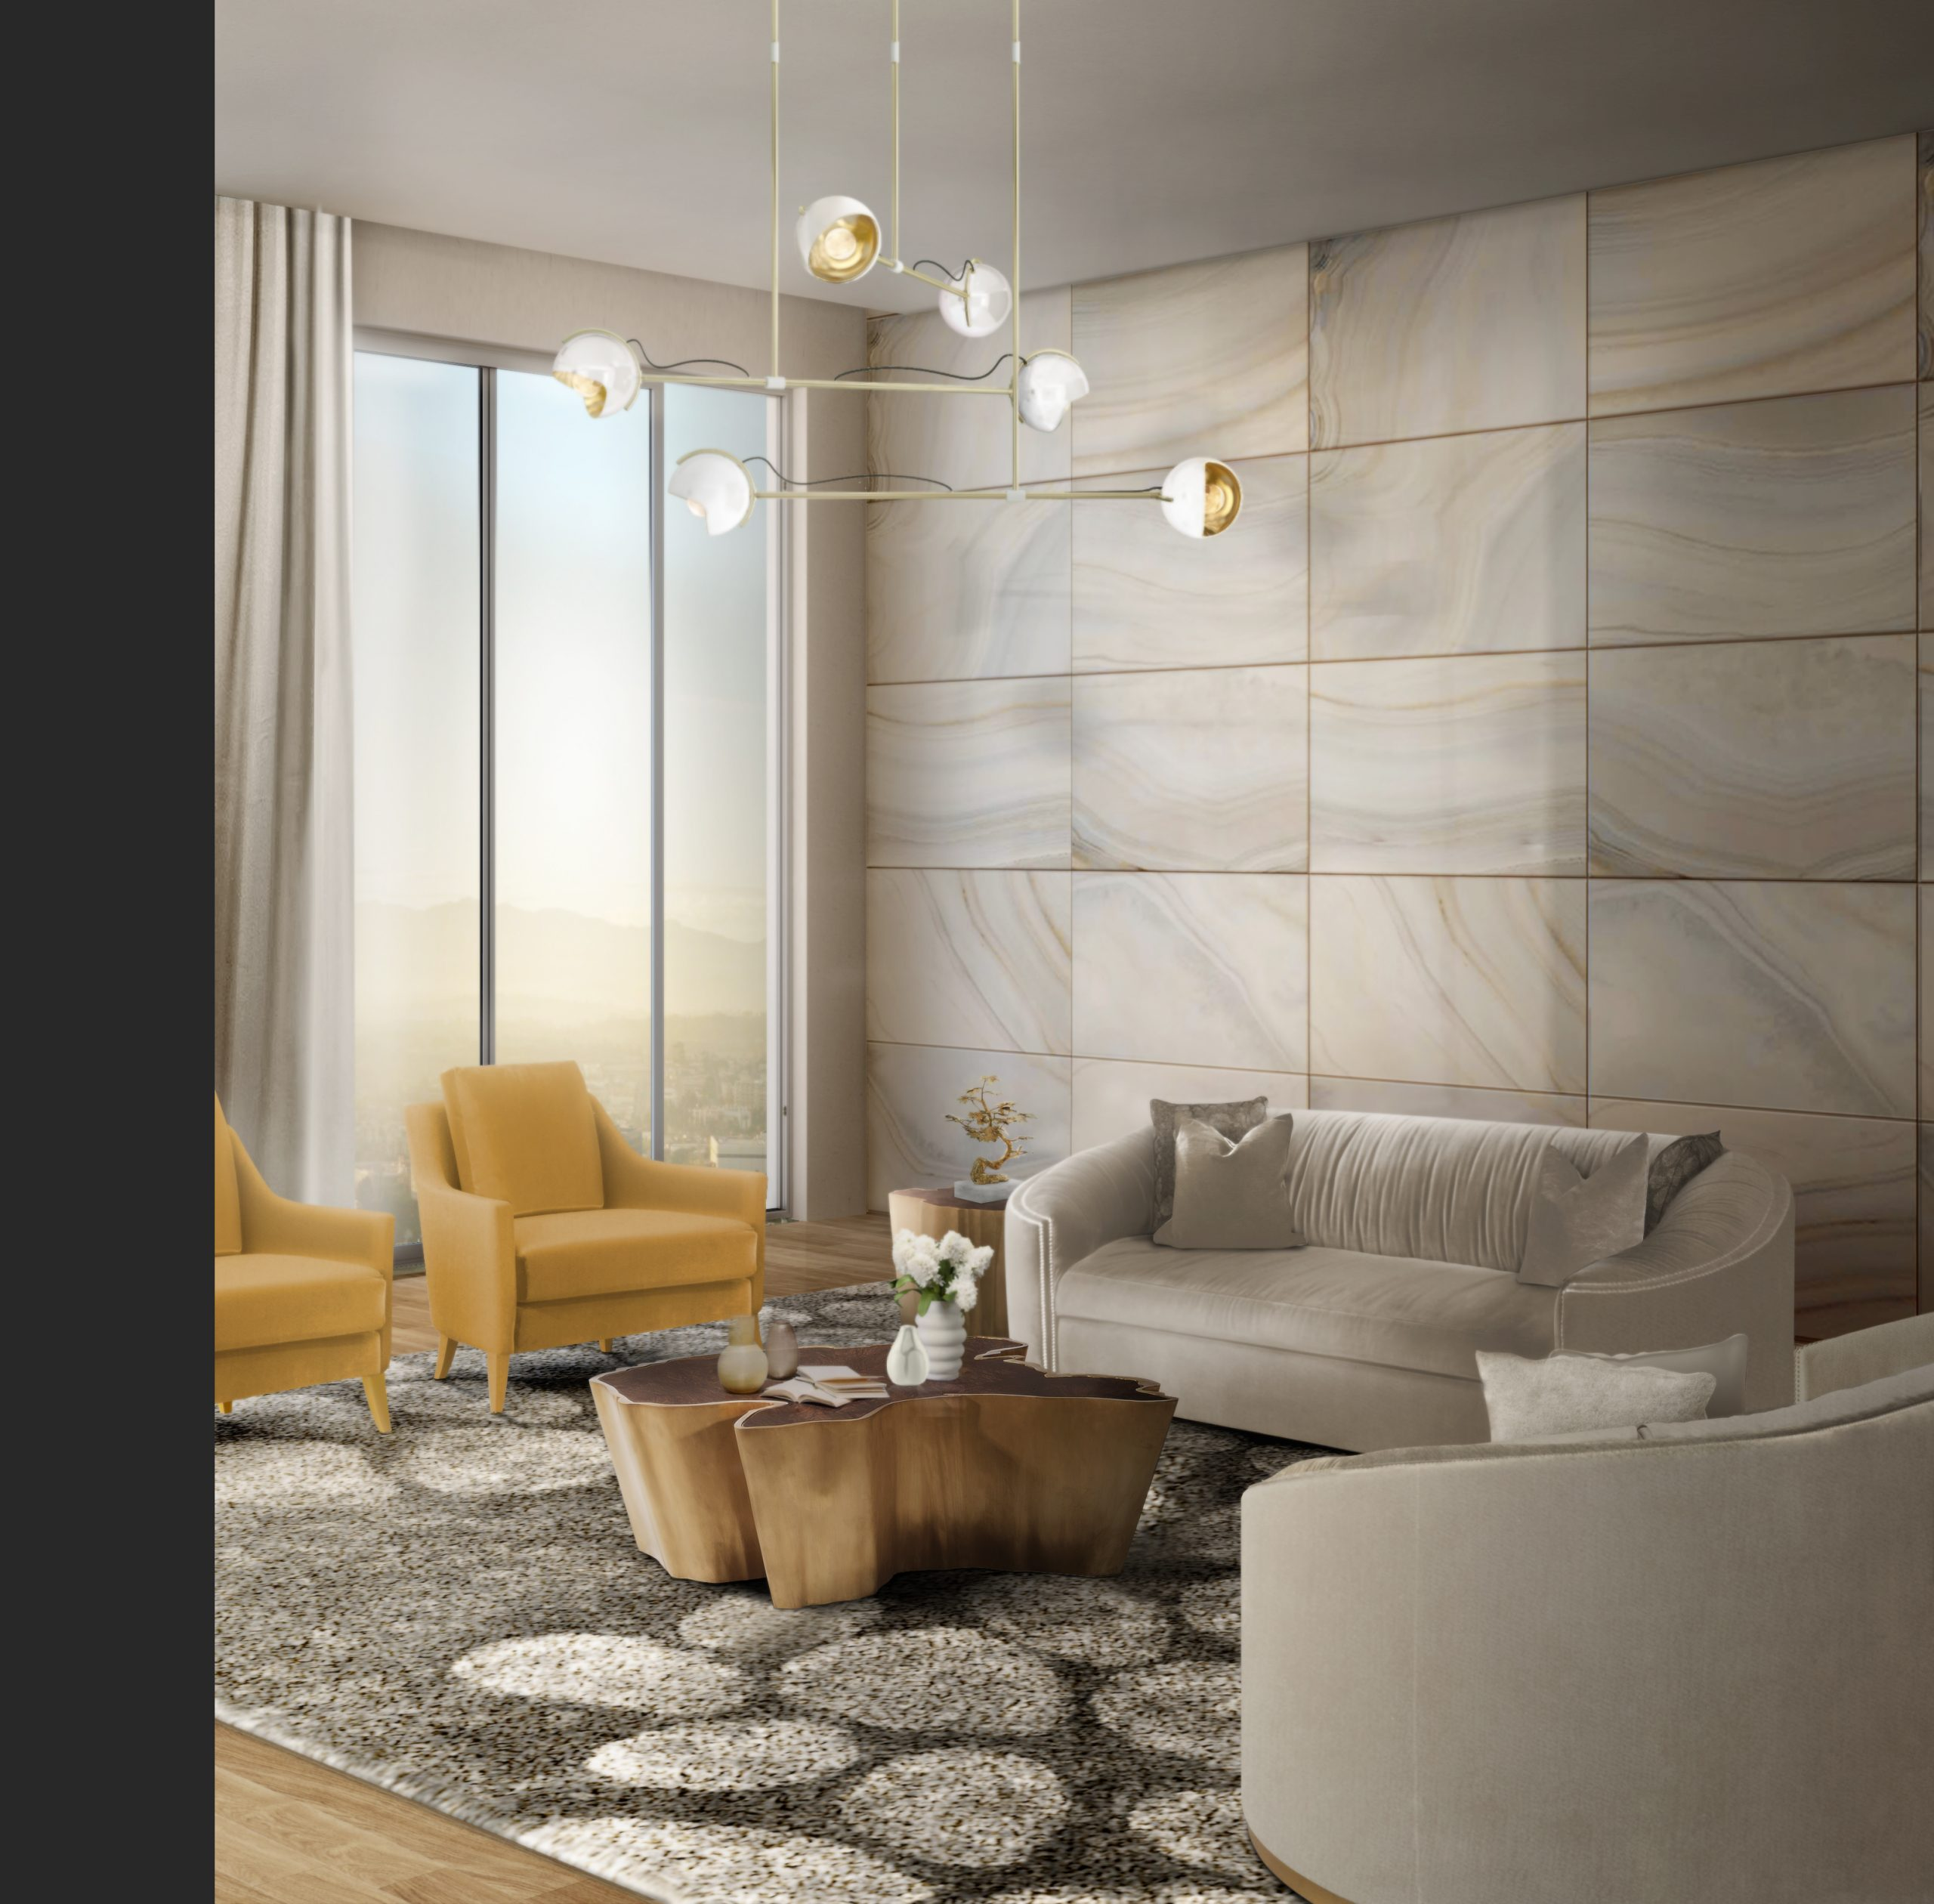 Discover the Italian Design Trends You'll See Everywhere in 2021! italian design trends Discover the Italian Design Trends You'll See Everywhere in 2021! 11 scaled